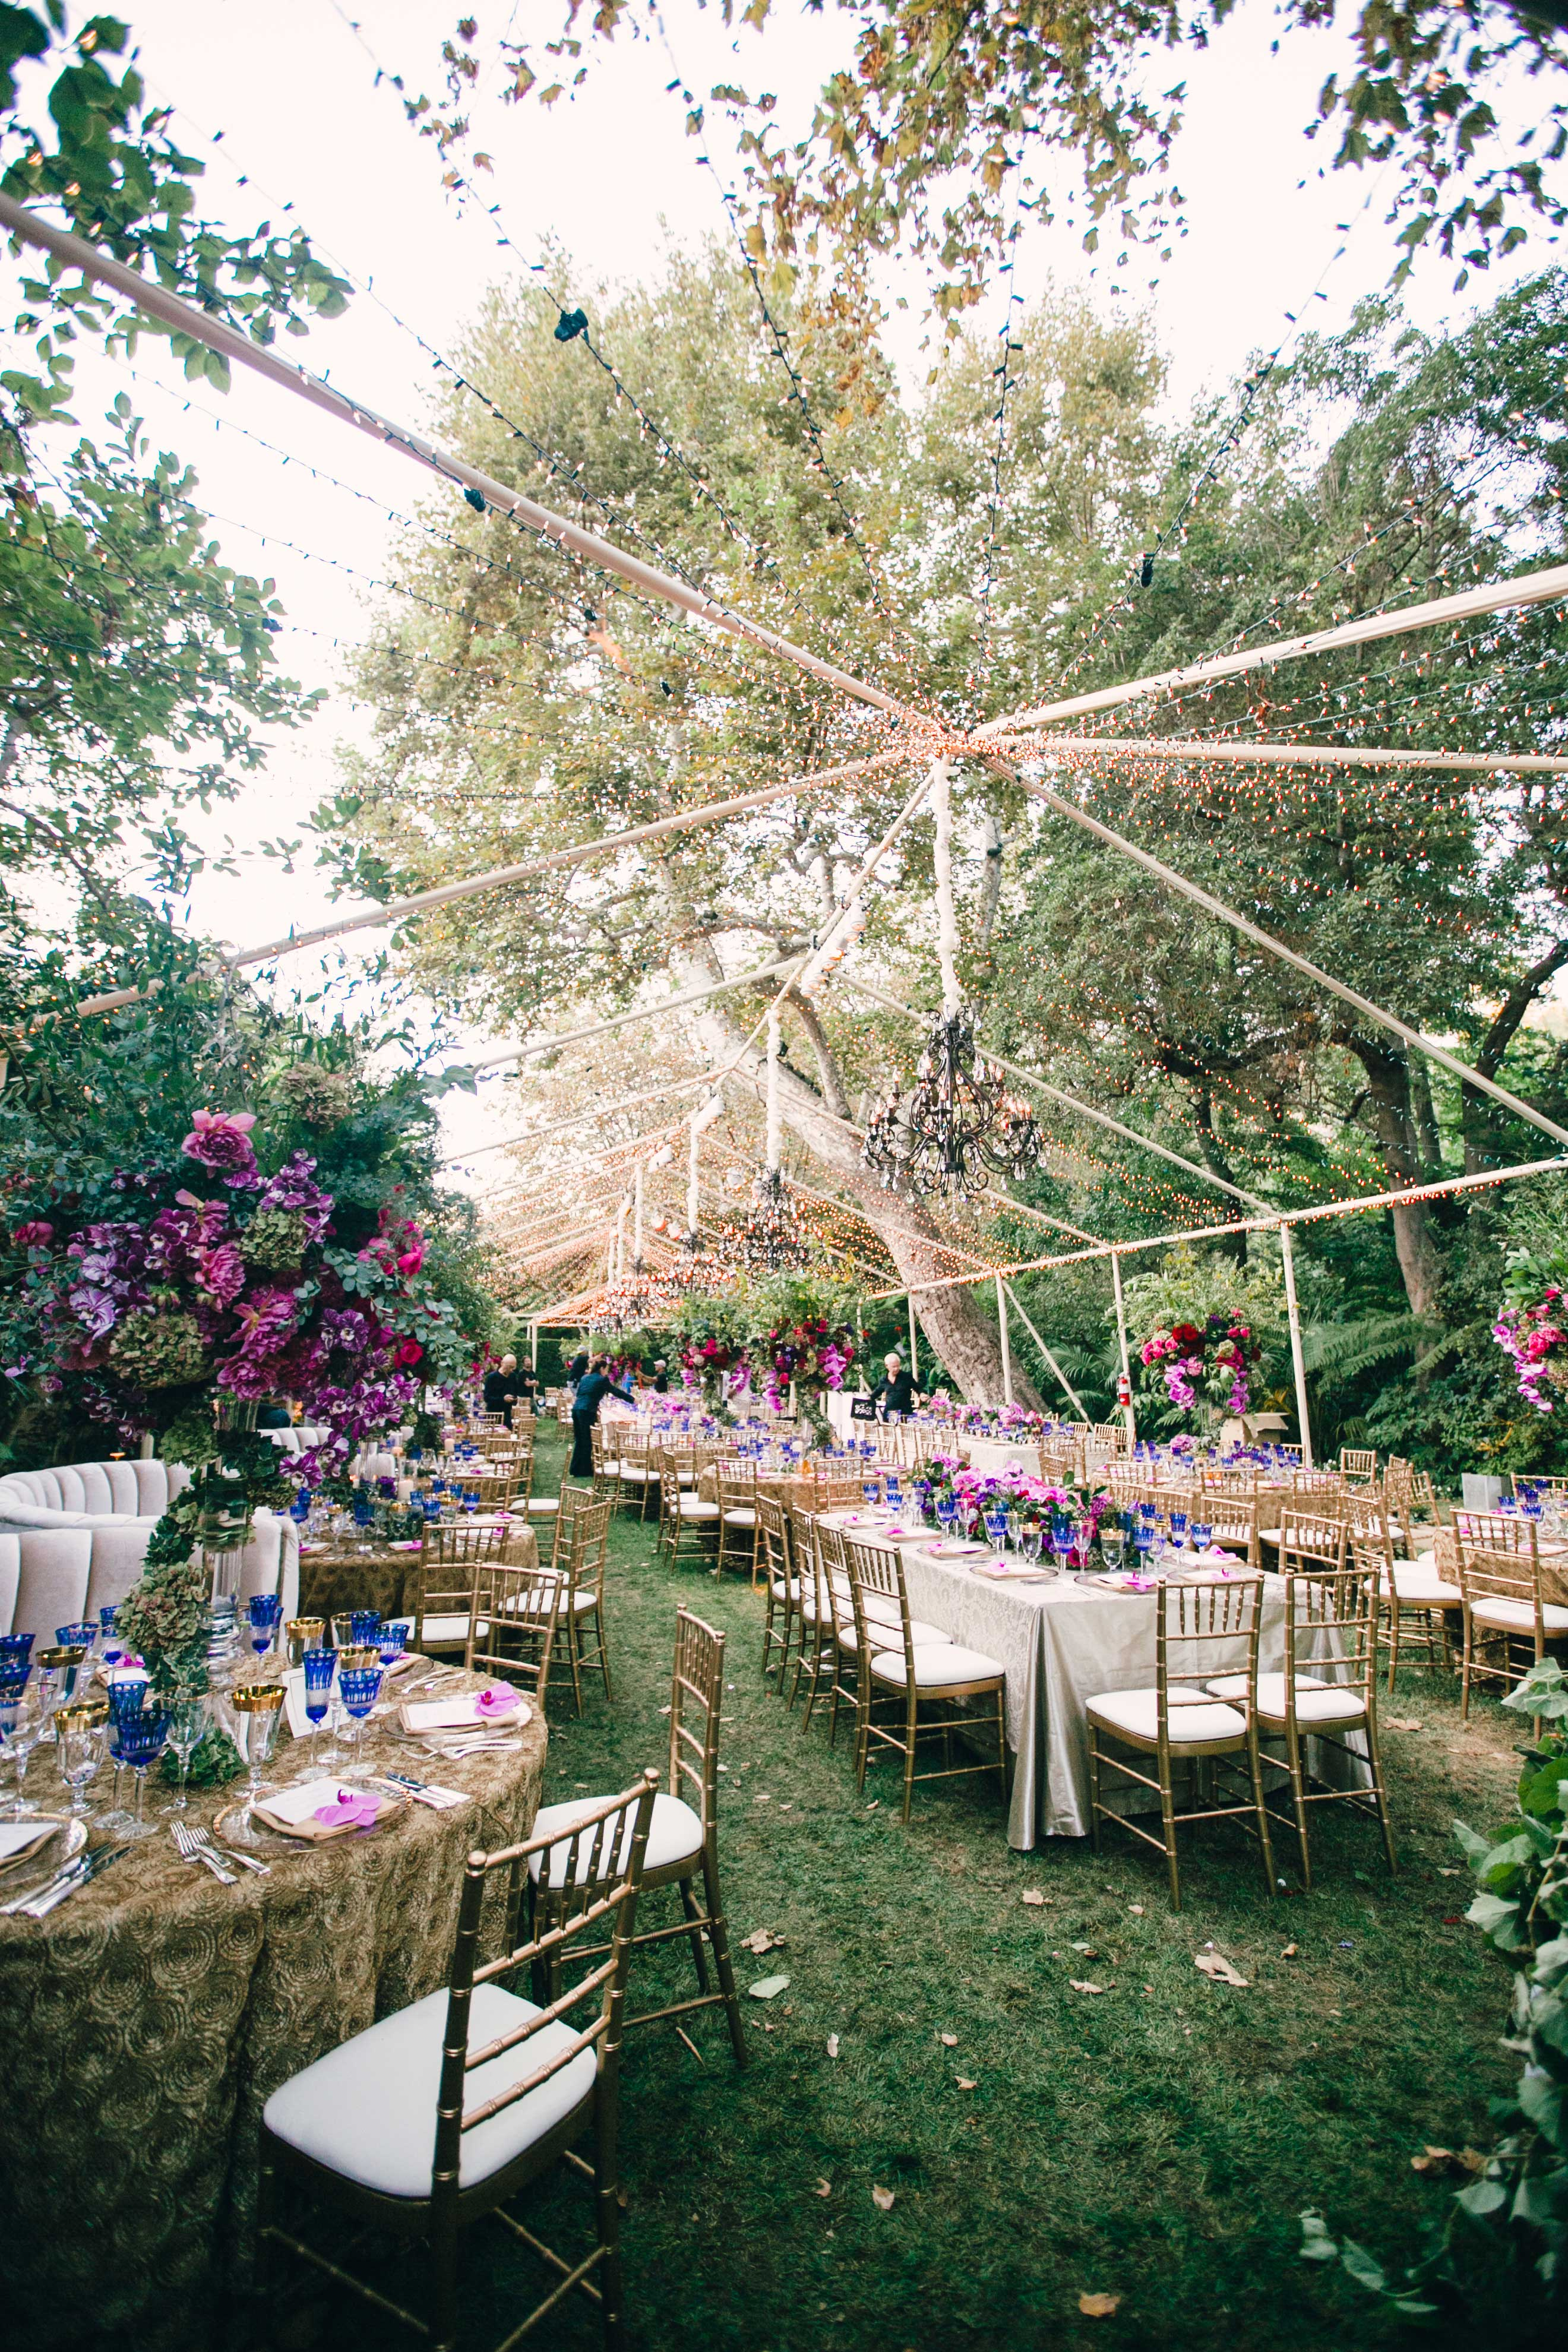 popular real wedding inside weddings clear tent outdoor reception colorful mindy weiss revelry event designers